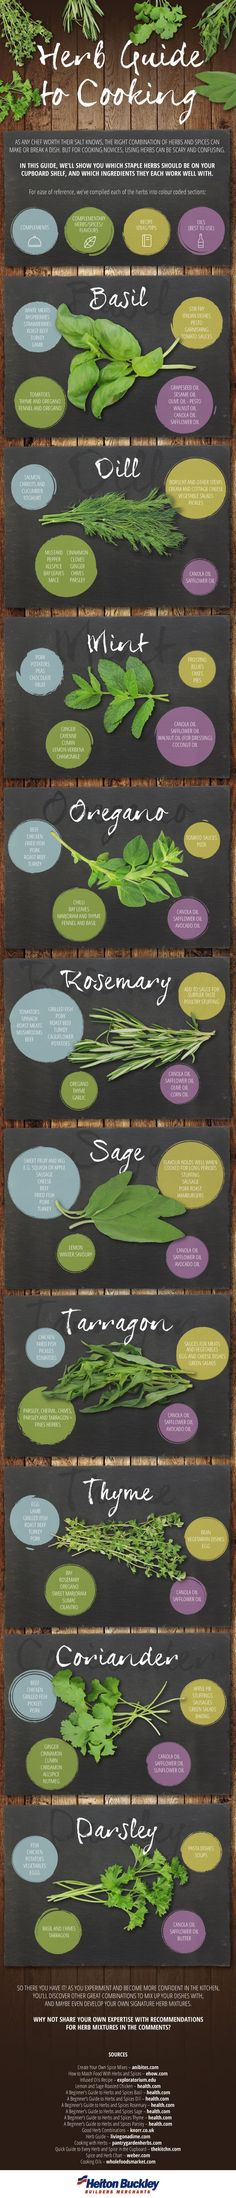 Guide To Using Herbs When Cooking (Infographic)